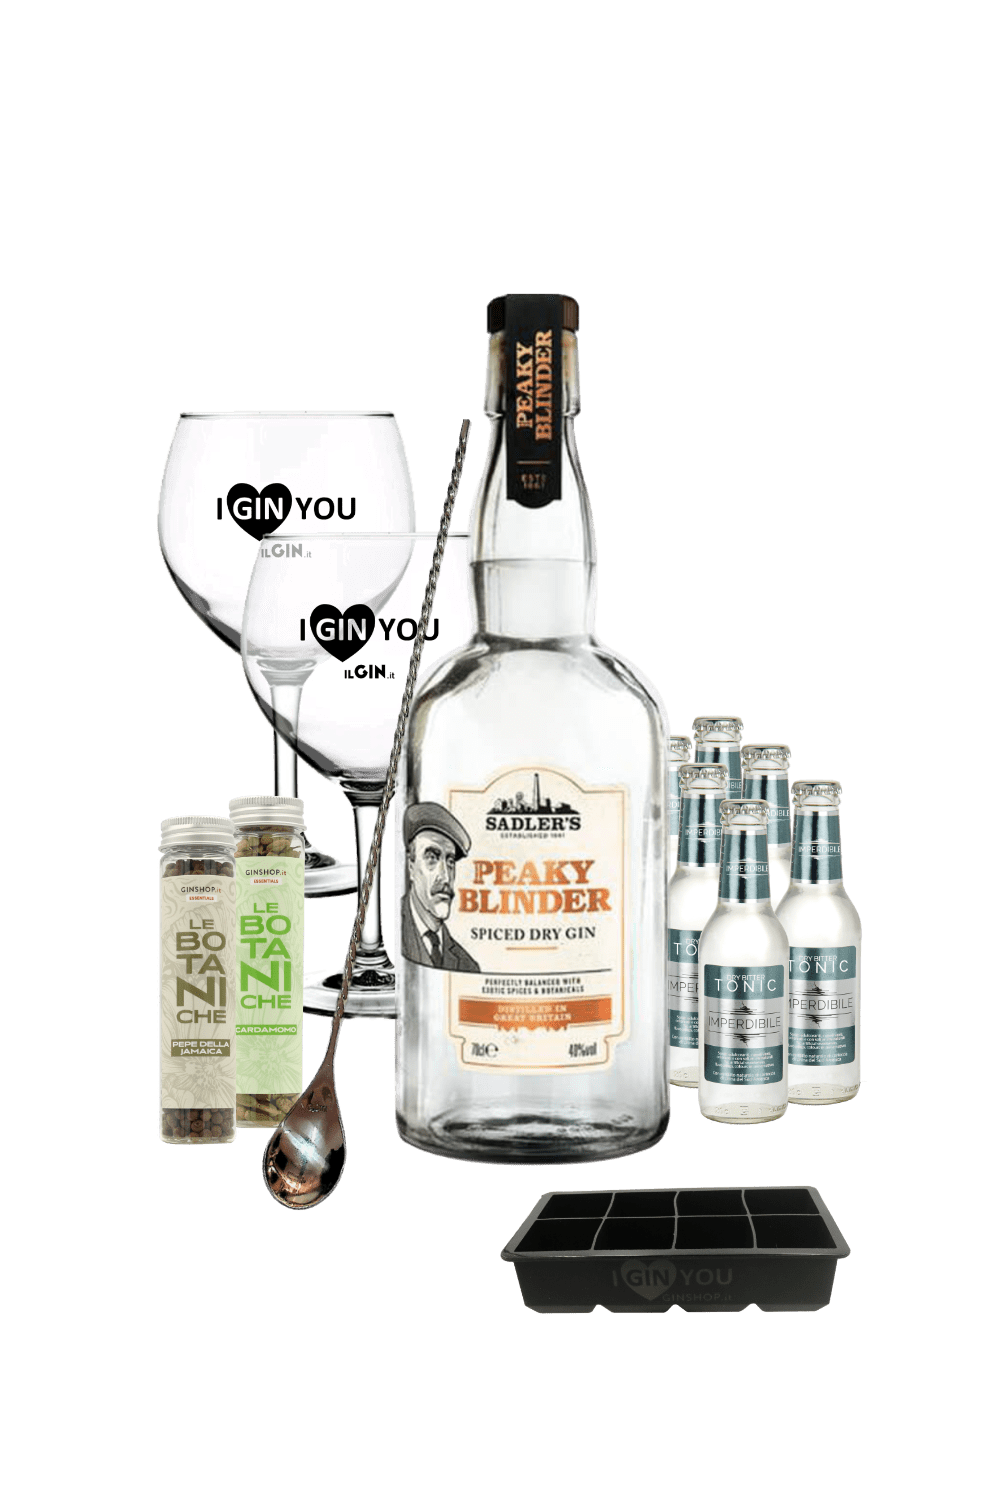 Peaky Blinder – Shelby's Tonic